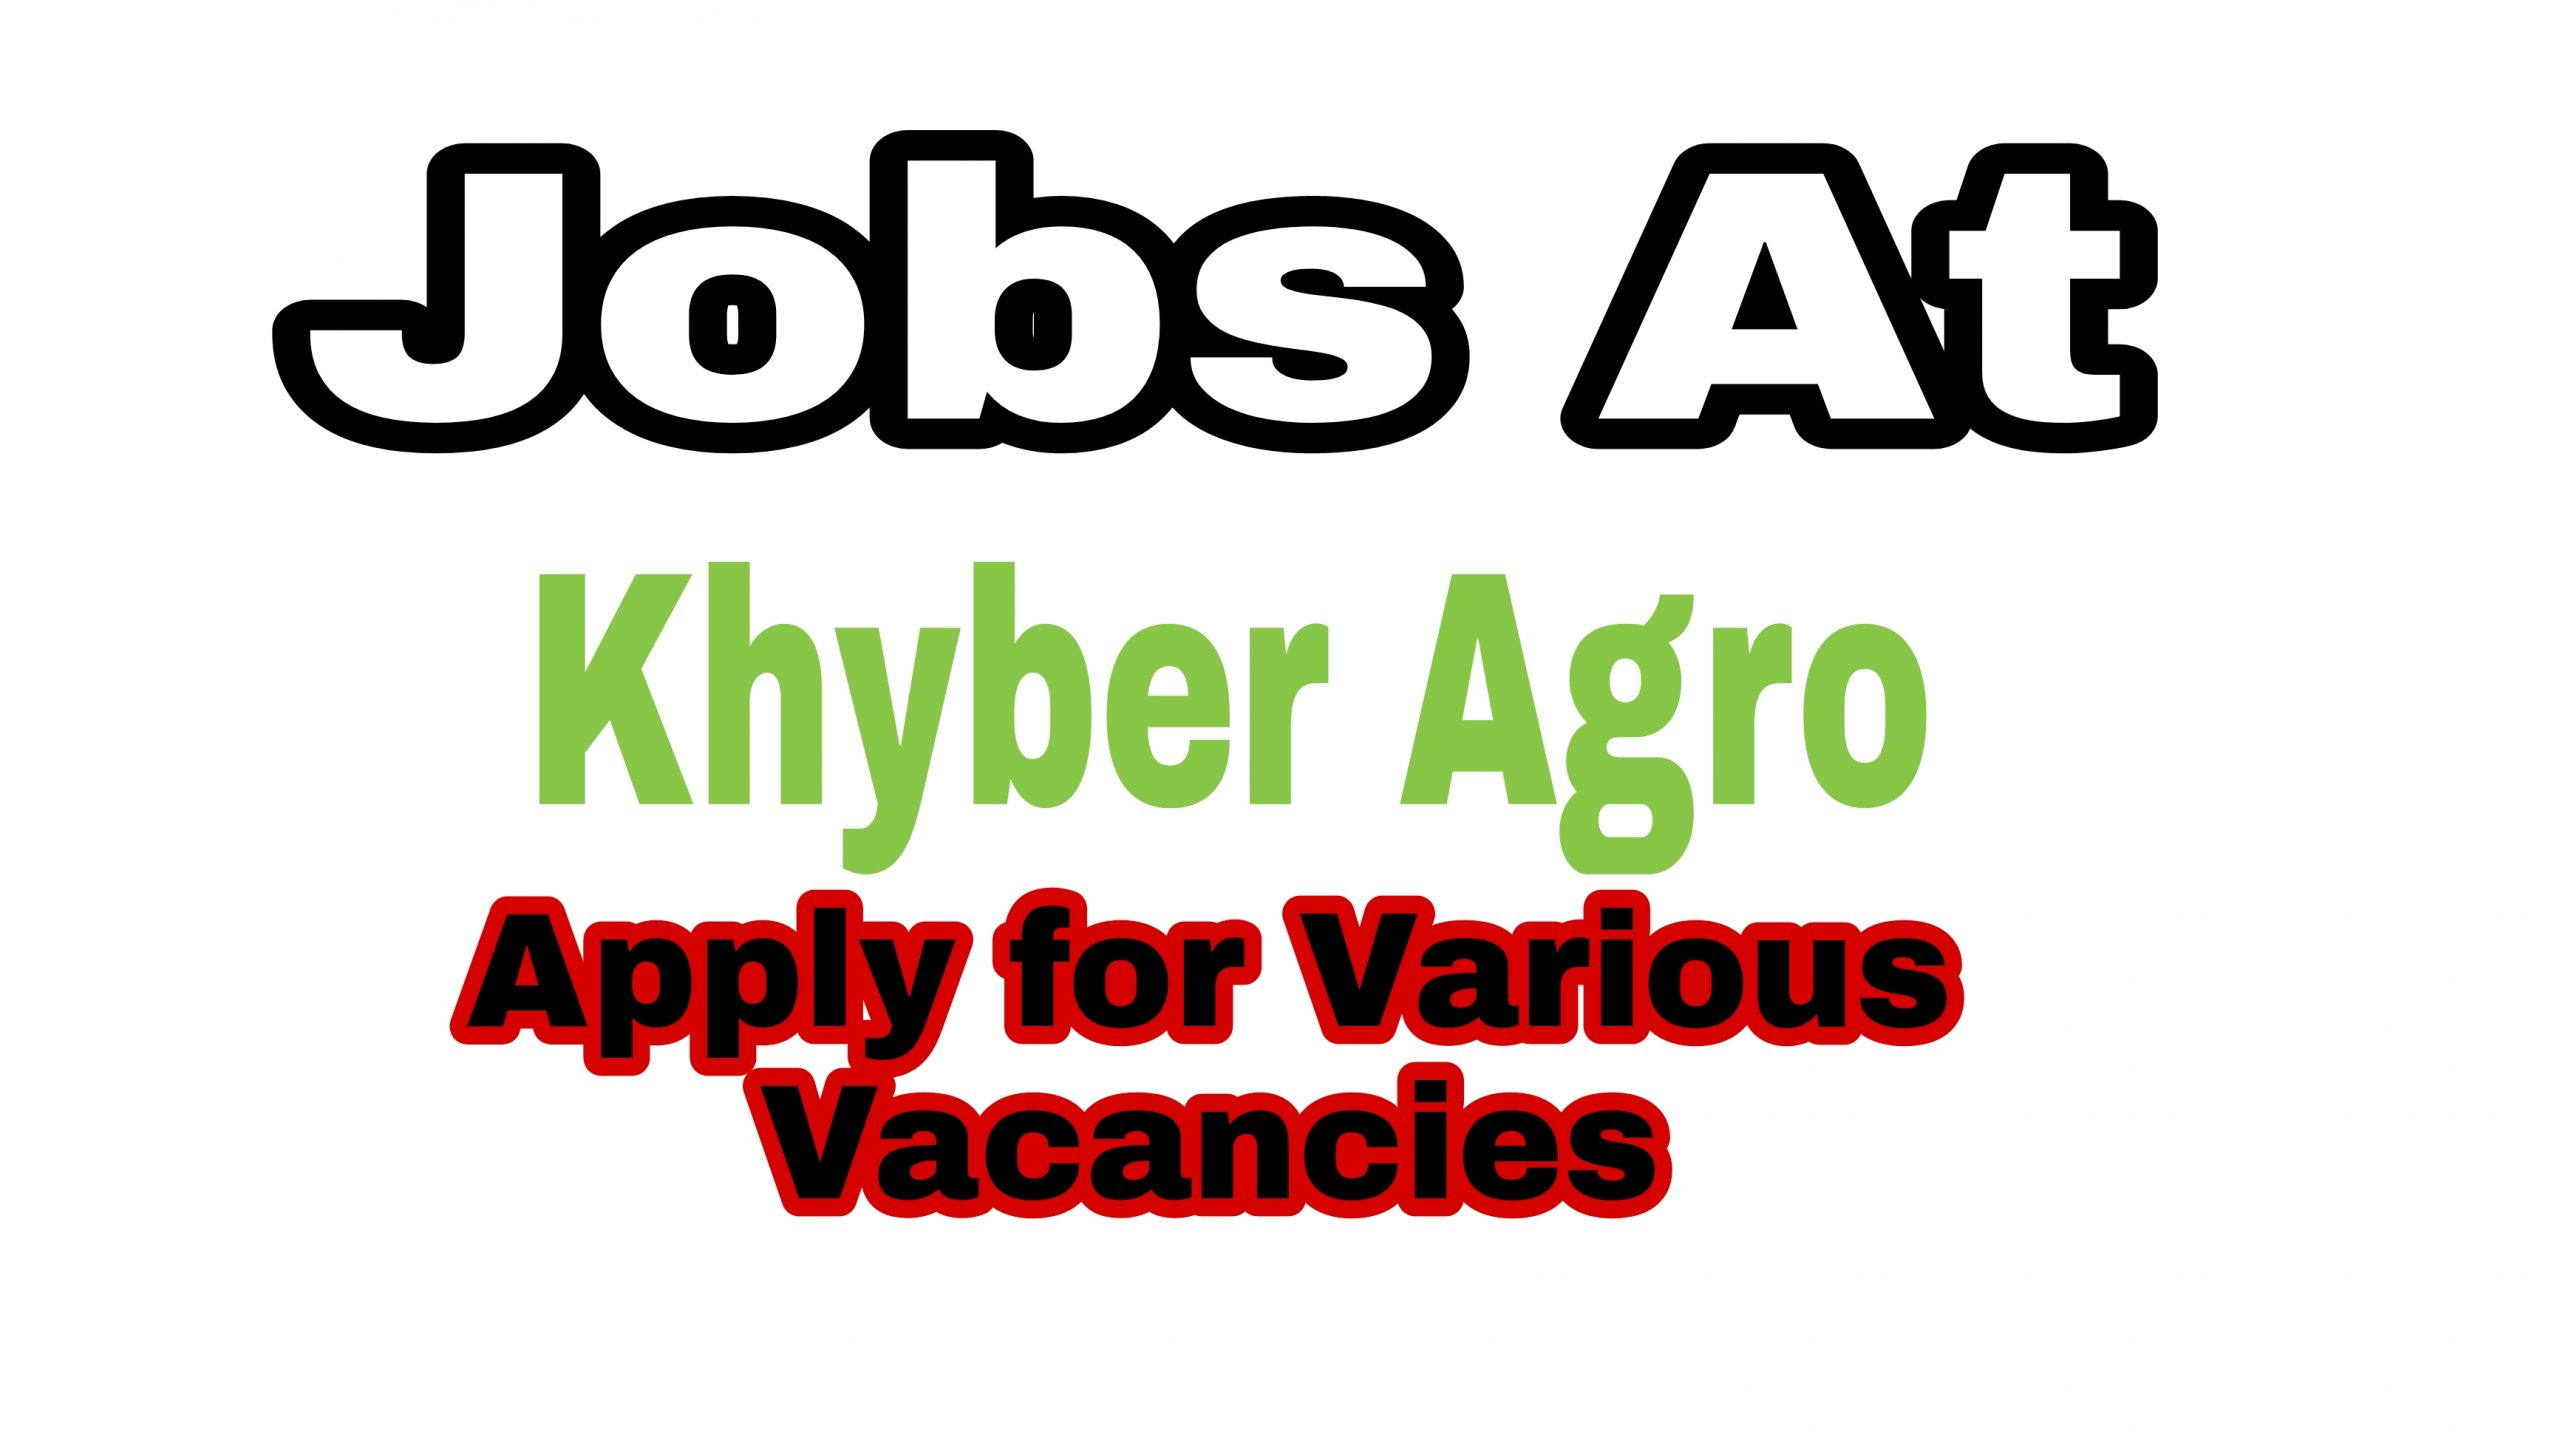 Khyber Agro farms job recruitment 2021 lassipora pulwama jobs Ganderbal Langate Kashmir